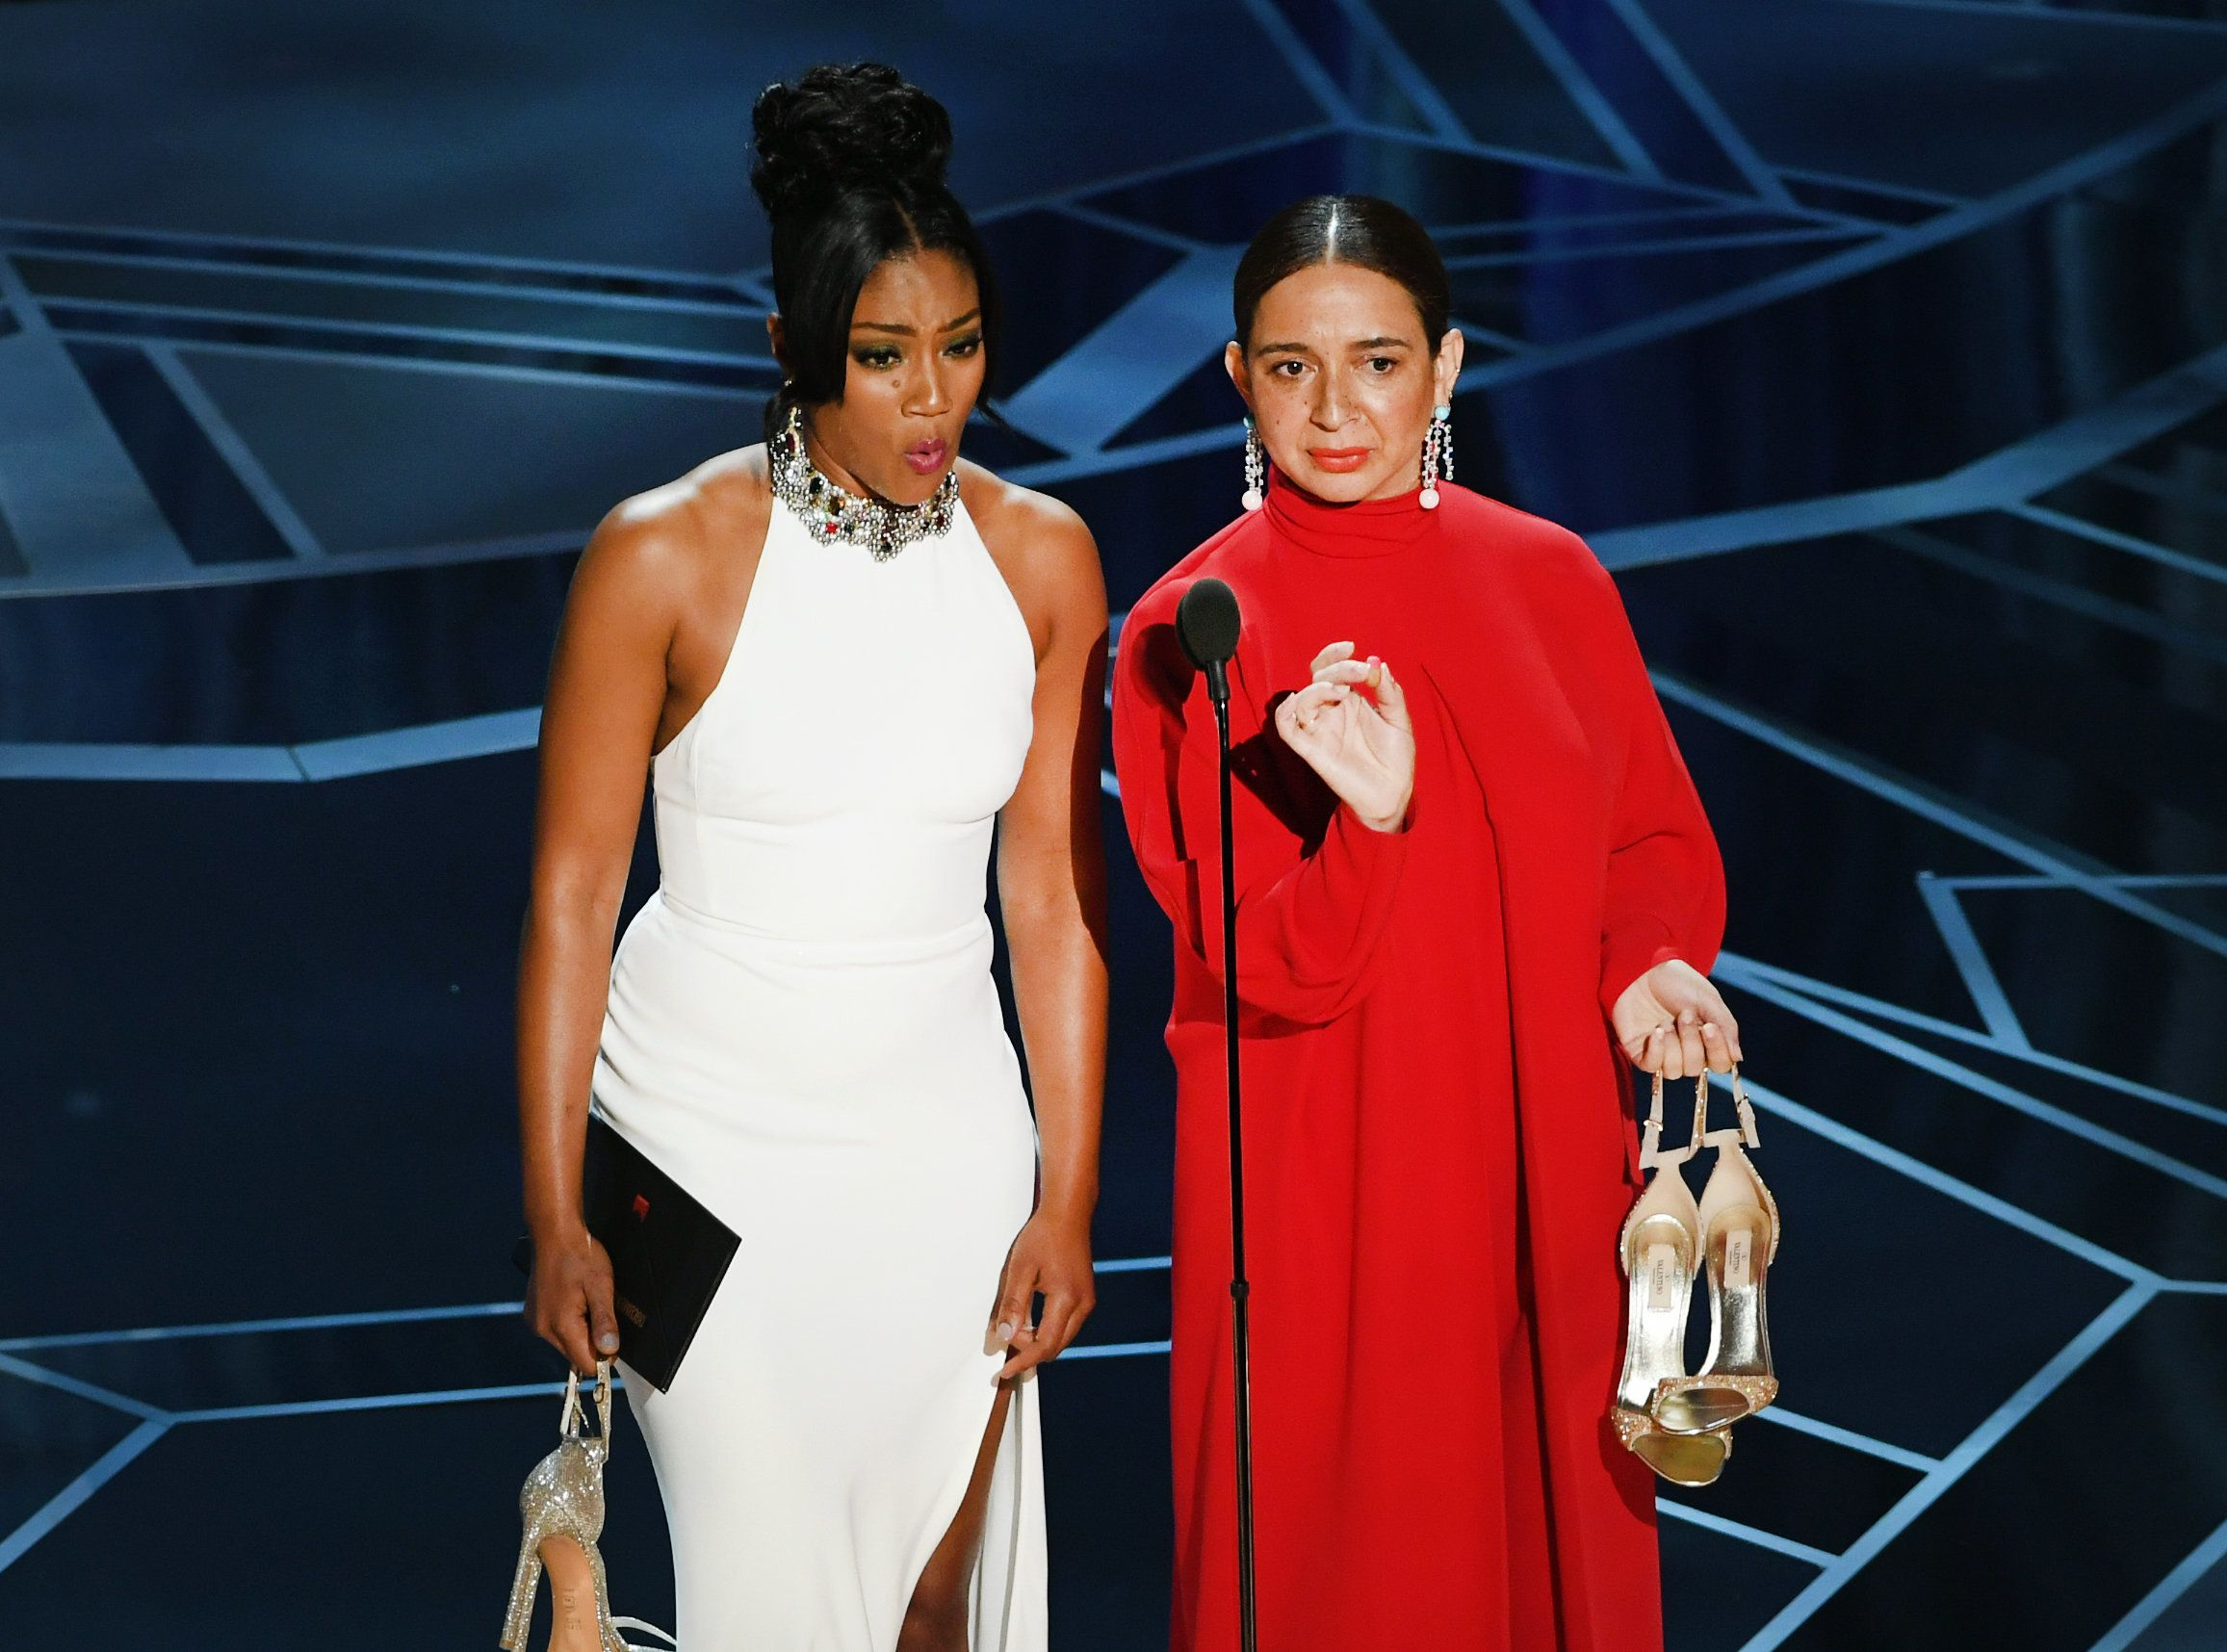 Tiffany Haddish And Maya Rudolph Steal The Show At The 2018 Oscars